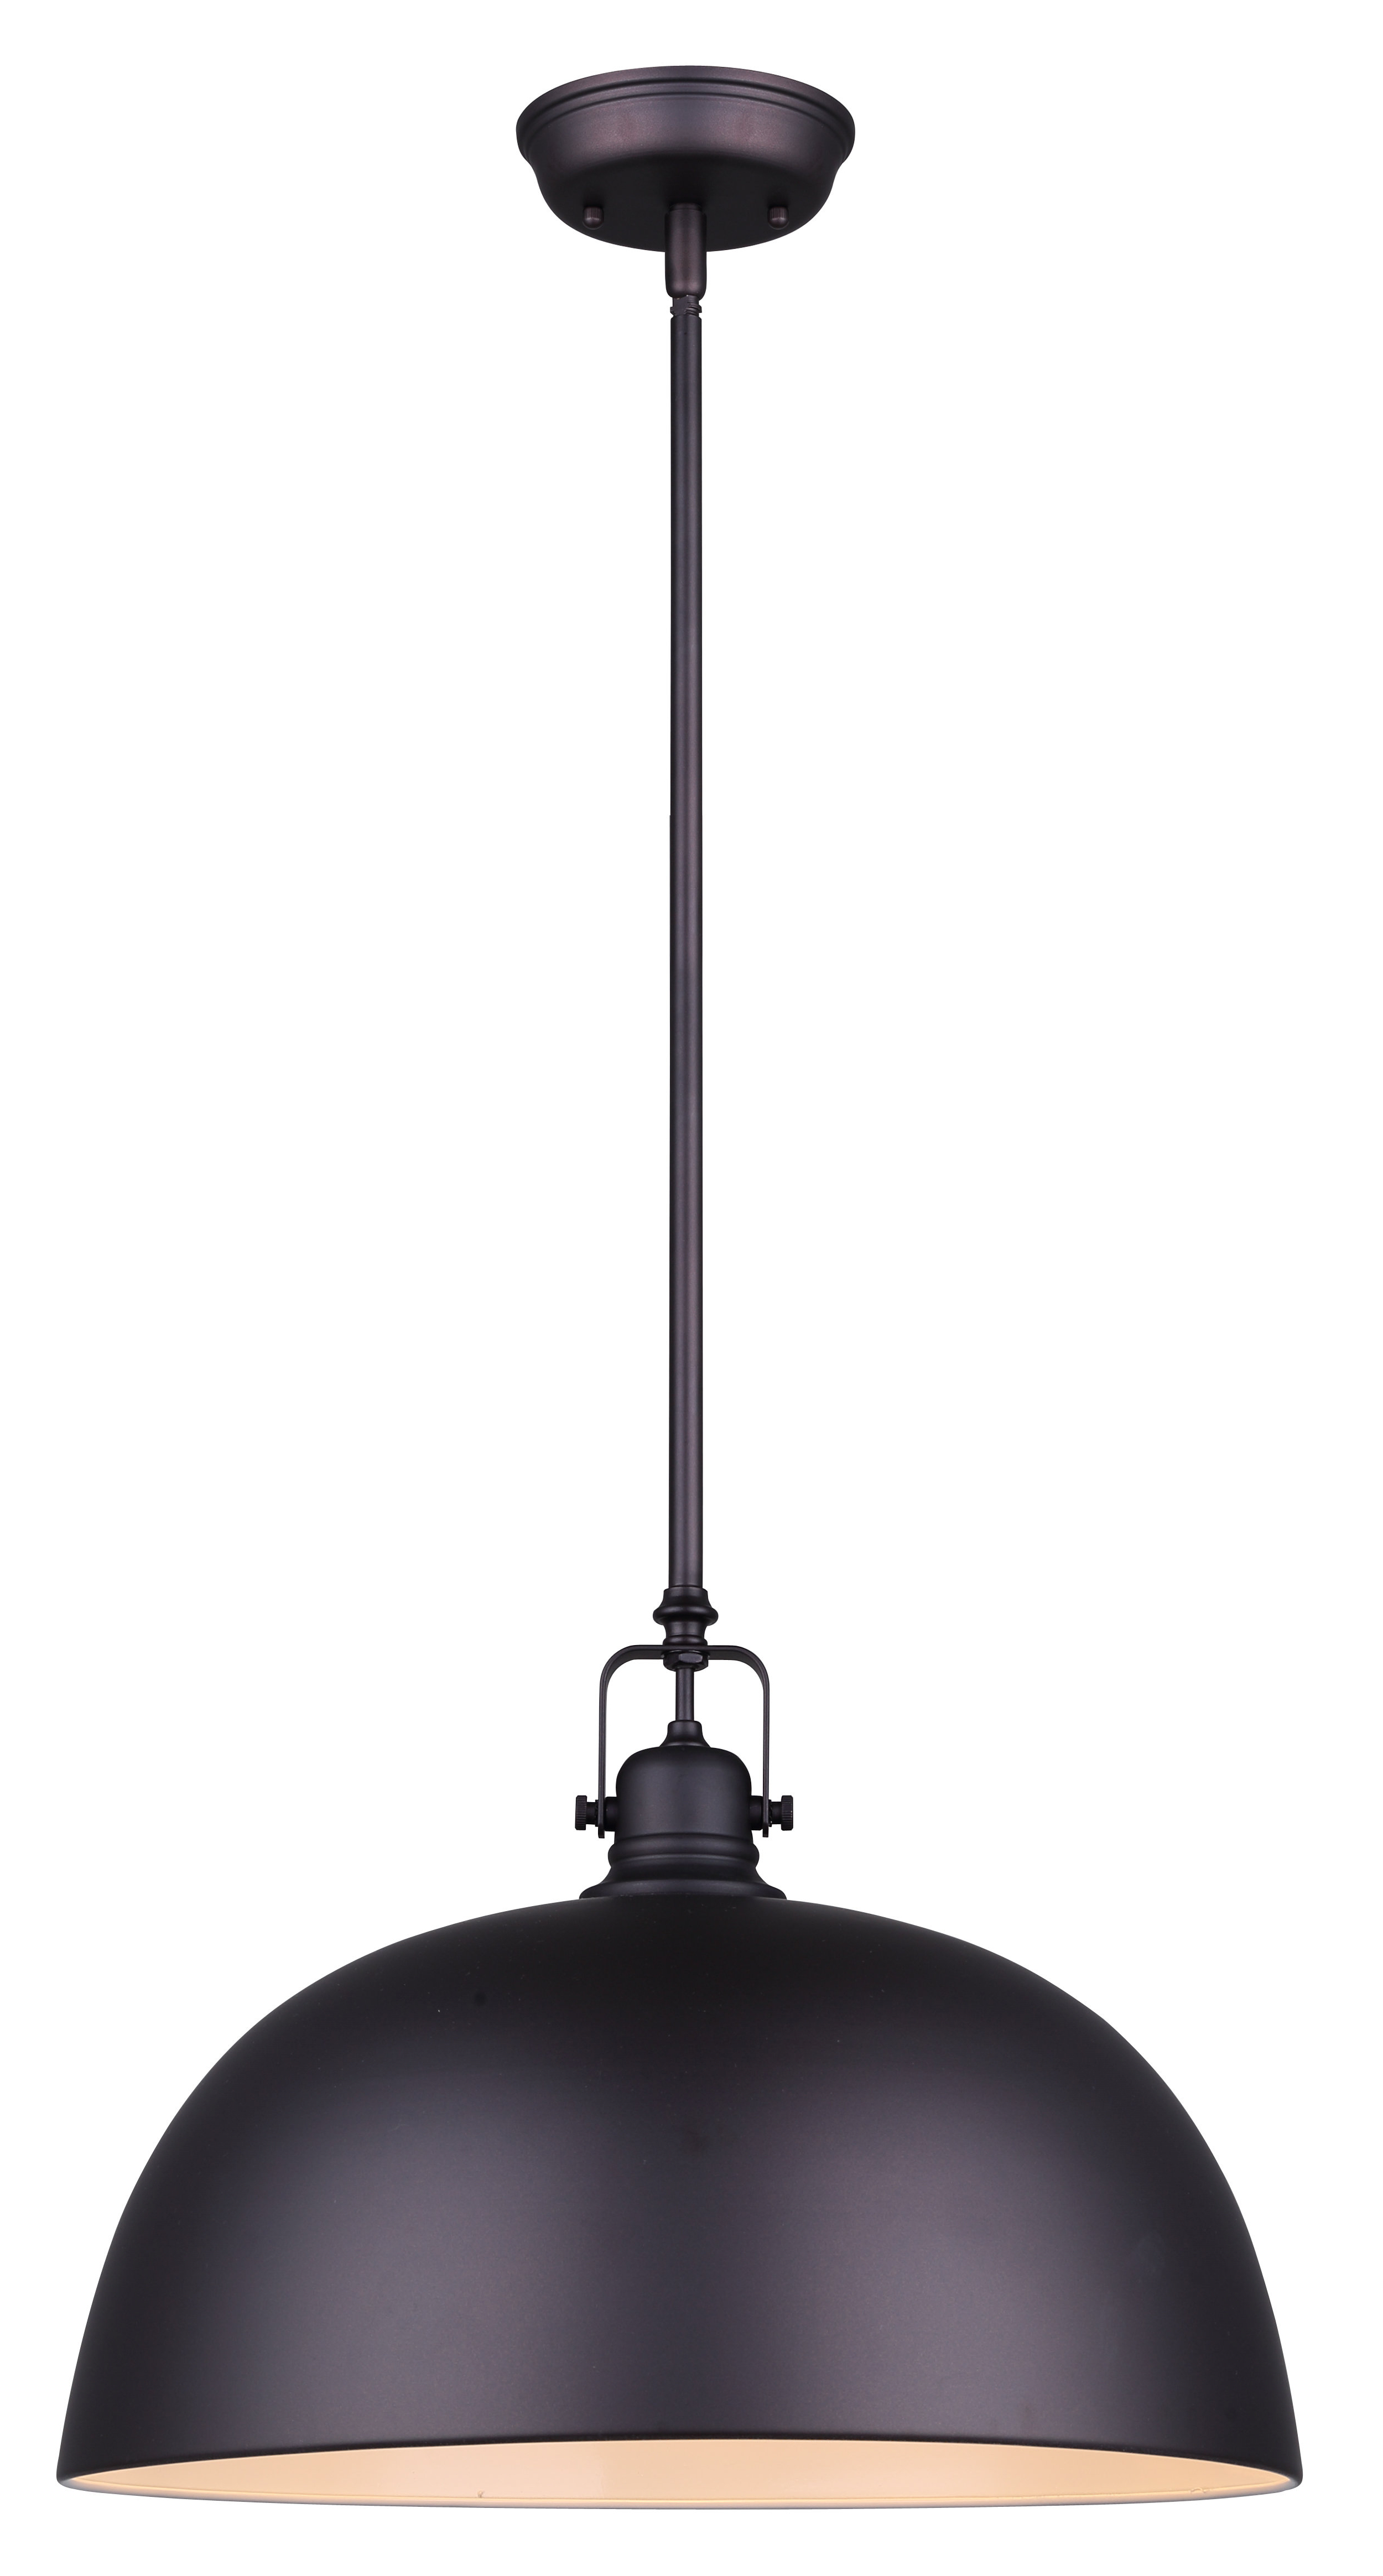 2020 Abernathy 1 Light Dome Pendants For Southlake 1 Light Single Dome Pendant (View 19 of 20)